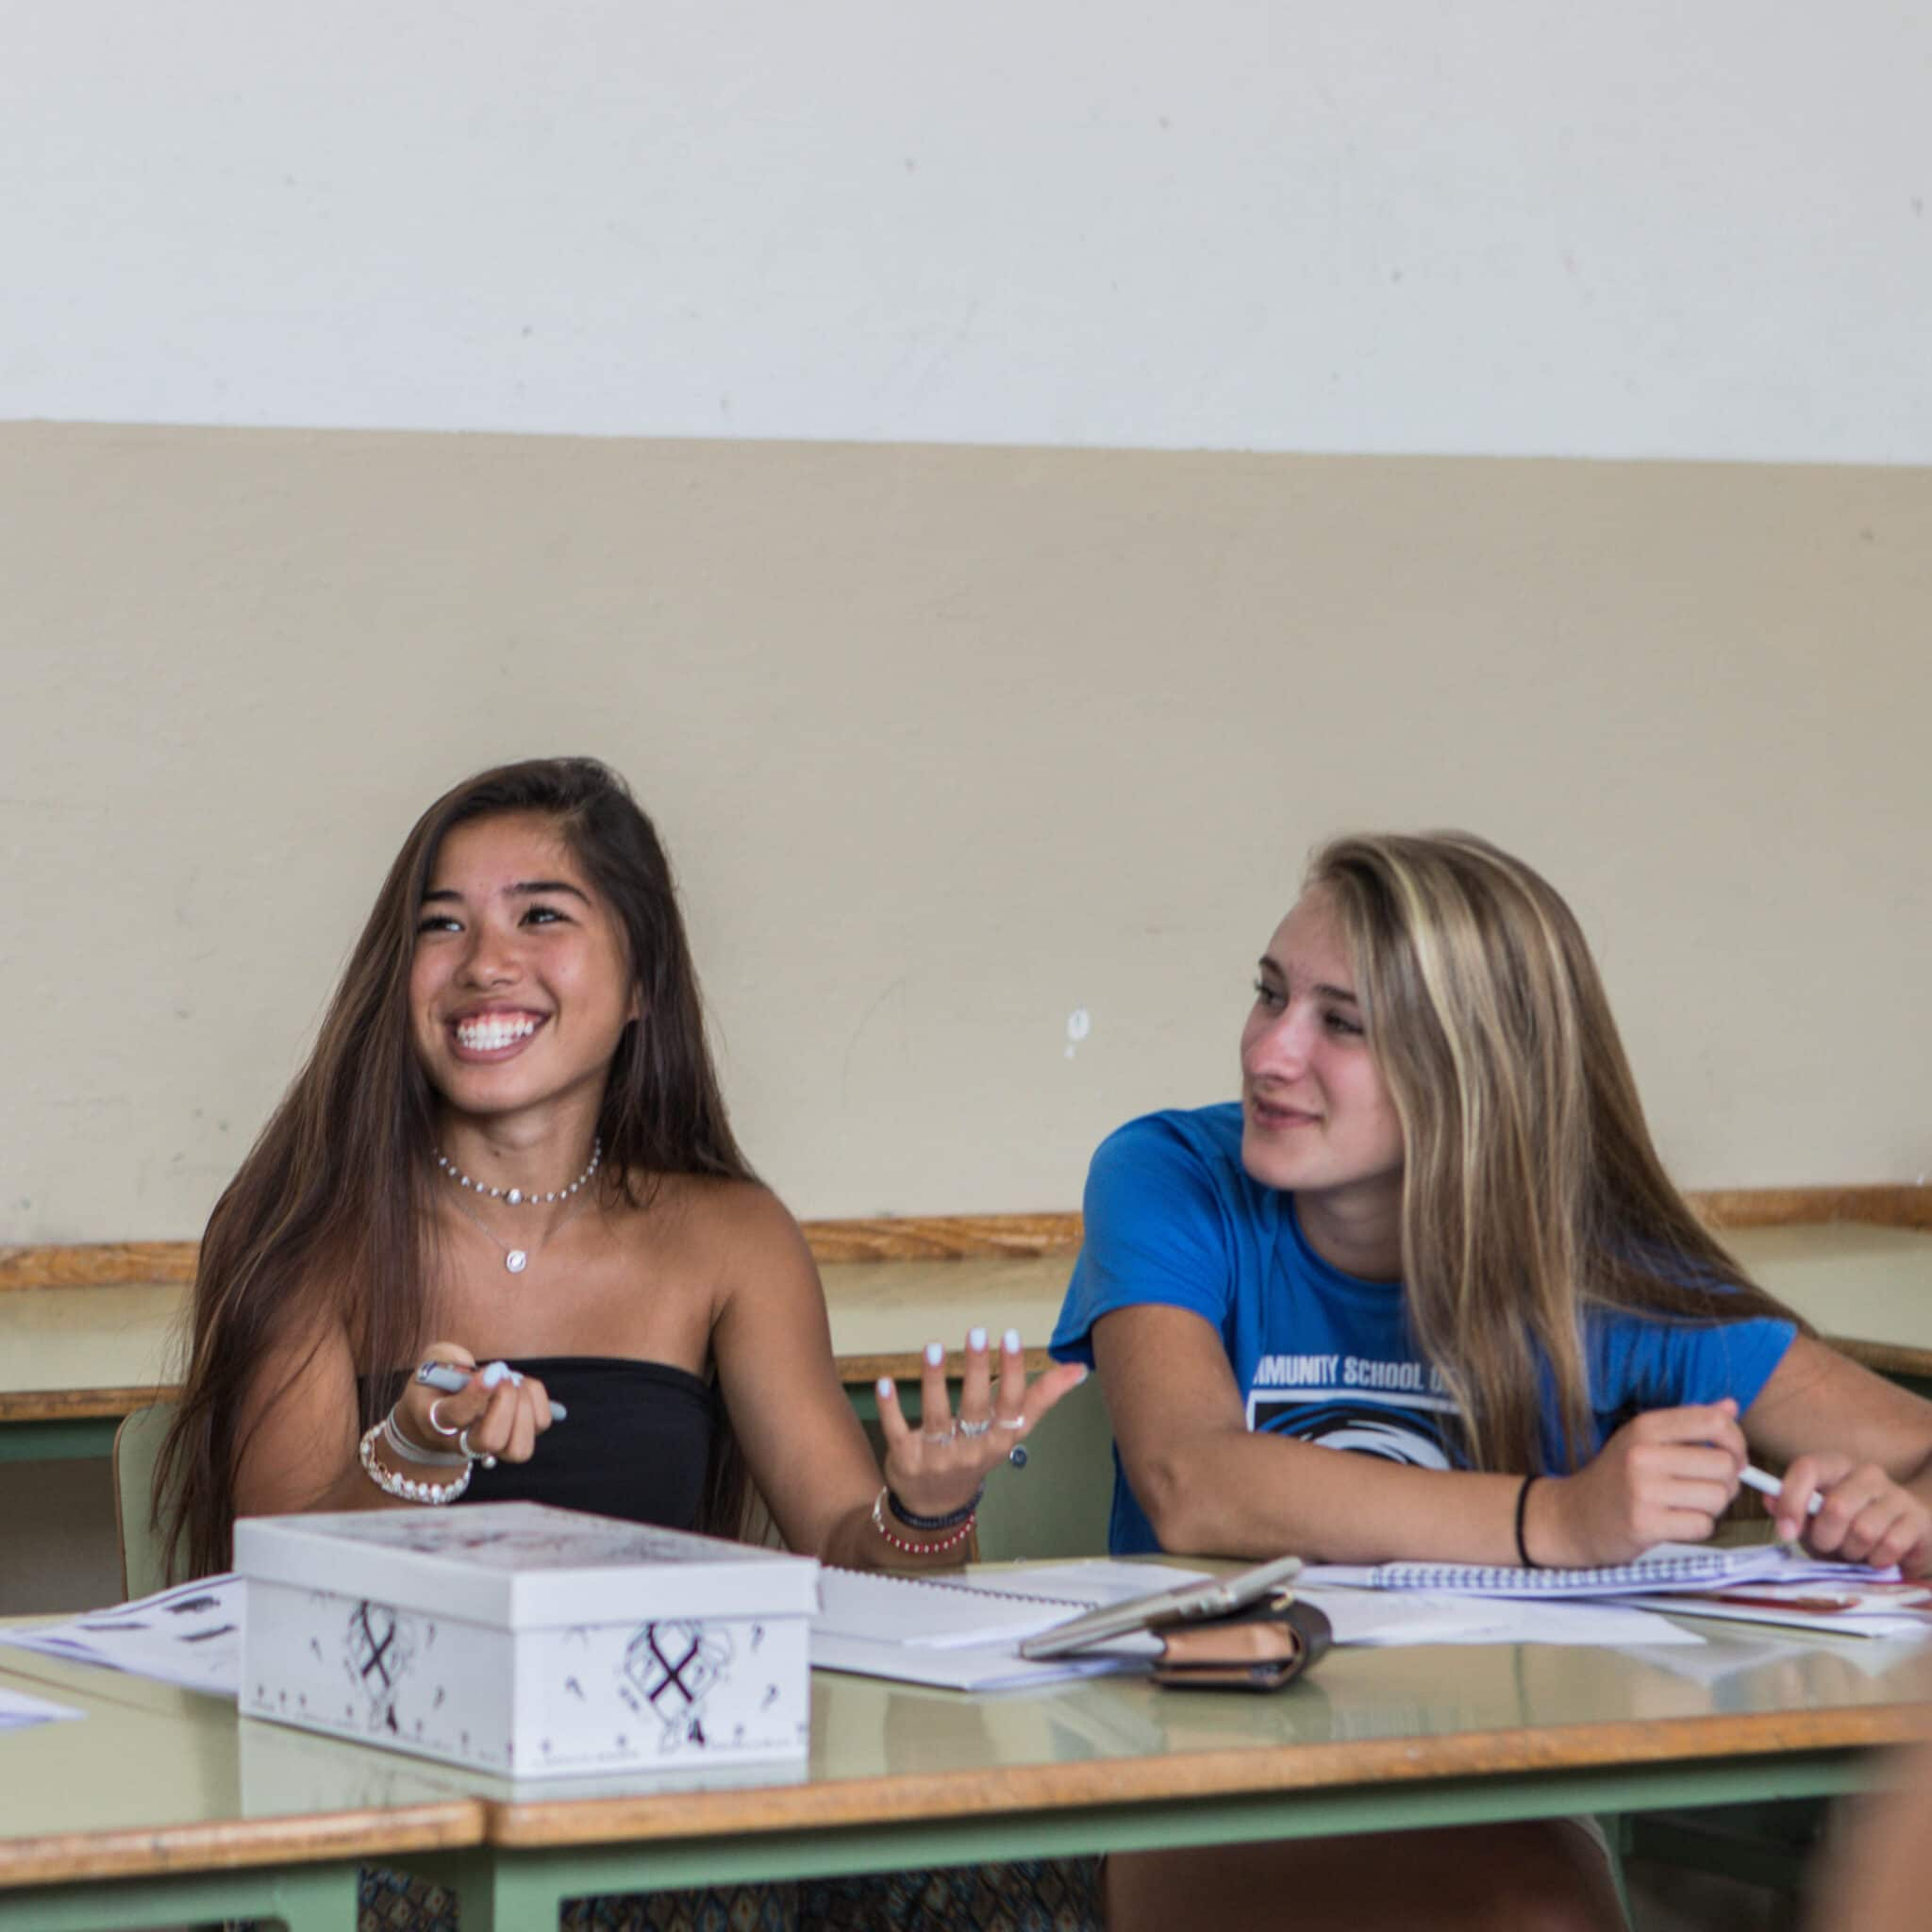 Spanish classes - summer volunteer abroad programs for high school students